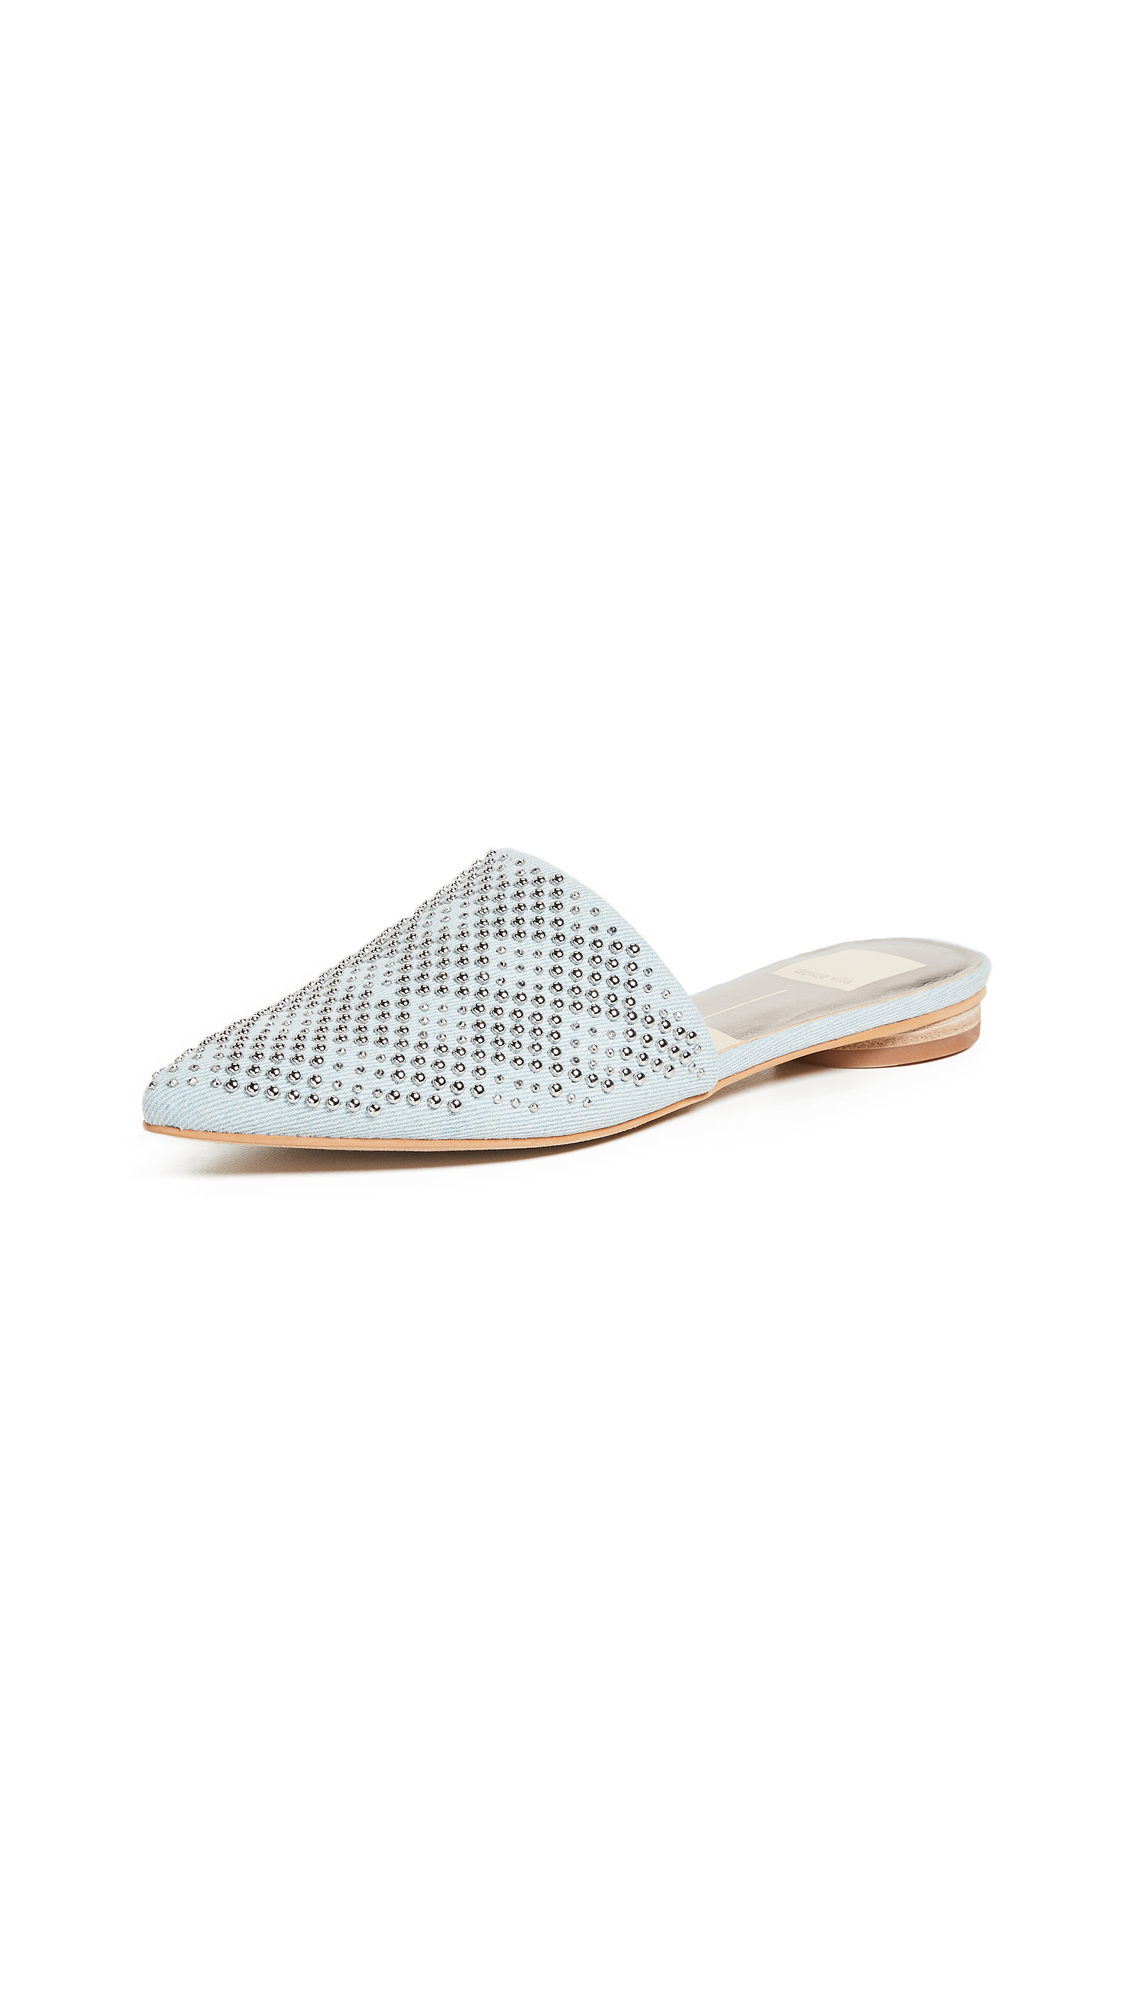 DOLCE VITA Elvah Point Toe Mules in Light Blue